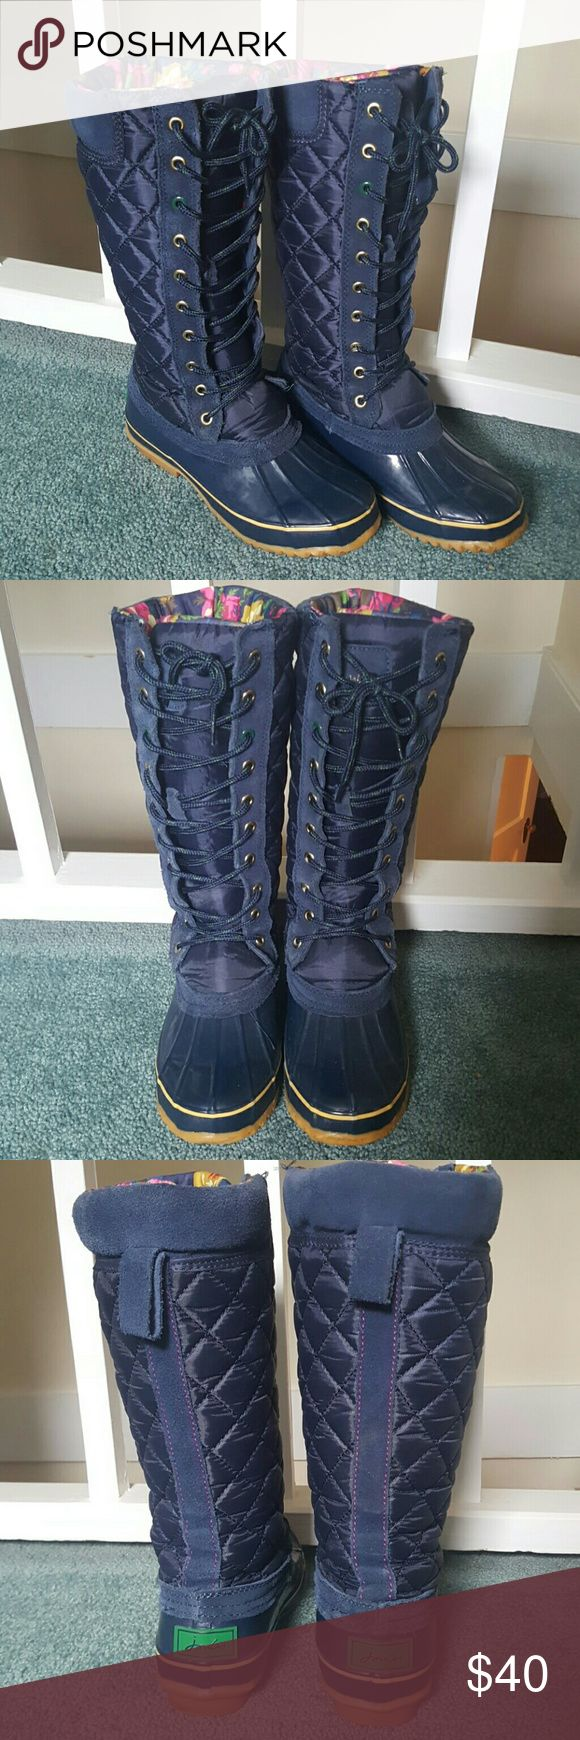 Joules boots Gently used Joules snow boots size 3UK 5US Joules Shoes Winter & Rain Boots